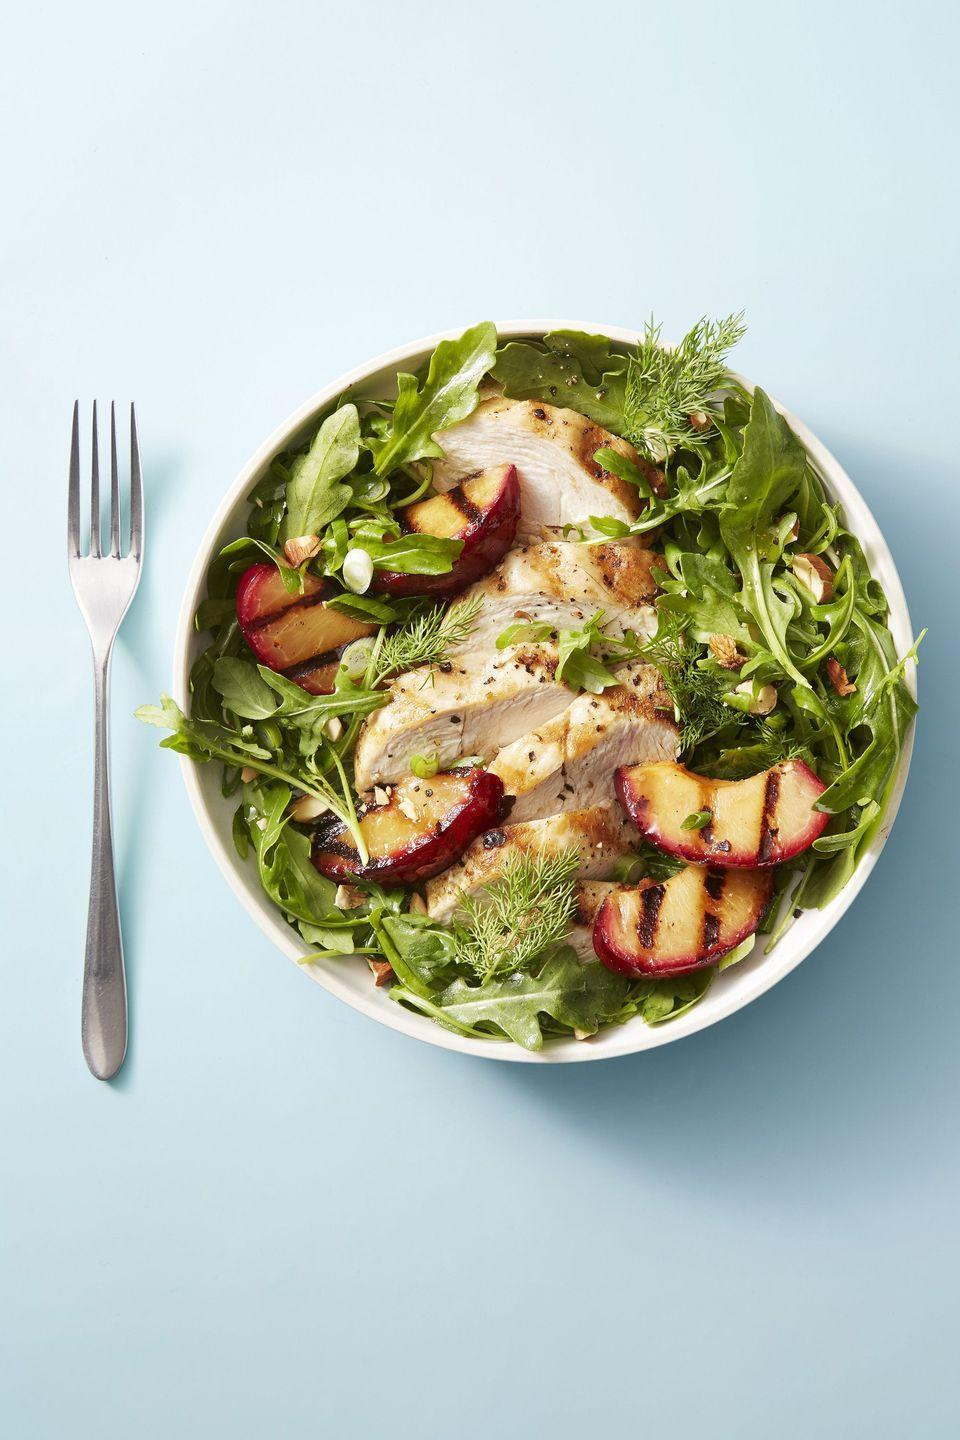 "<p>Top a bowl of arugula with grilled chicken and plums for fresh fruity flavor.</p><p><em><a href=""https://www.goodhousekeeping.com/food-recipes/easy/a21601672/chicken-and-red-plum-salad-recipe/"" rel=""nofollow noopener"" target=""_blank"" data-ylk=""slk:Get the recipe for Chicken and Red Plum Salad »"" class=""link rapid-noclick-resp"">Get the recipe for Chicken and Red Plum Salad »</a></em></p>"